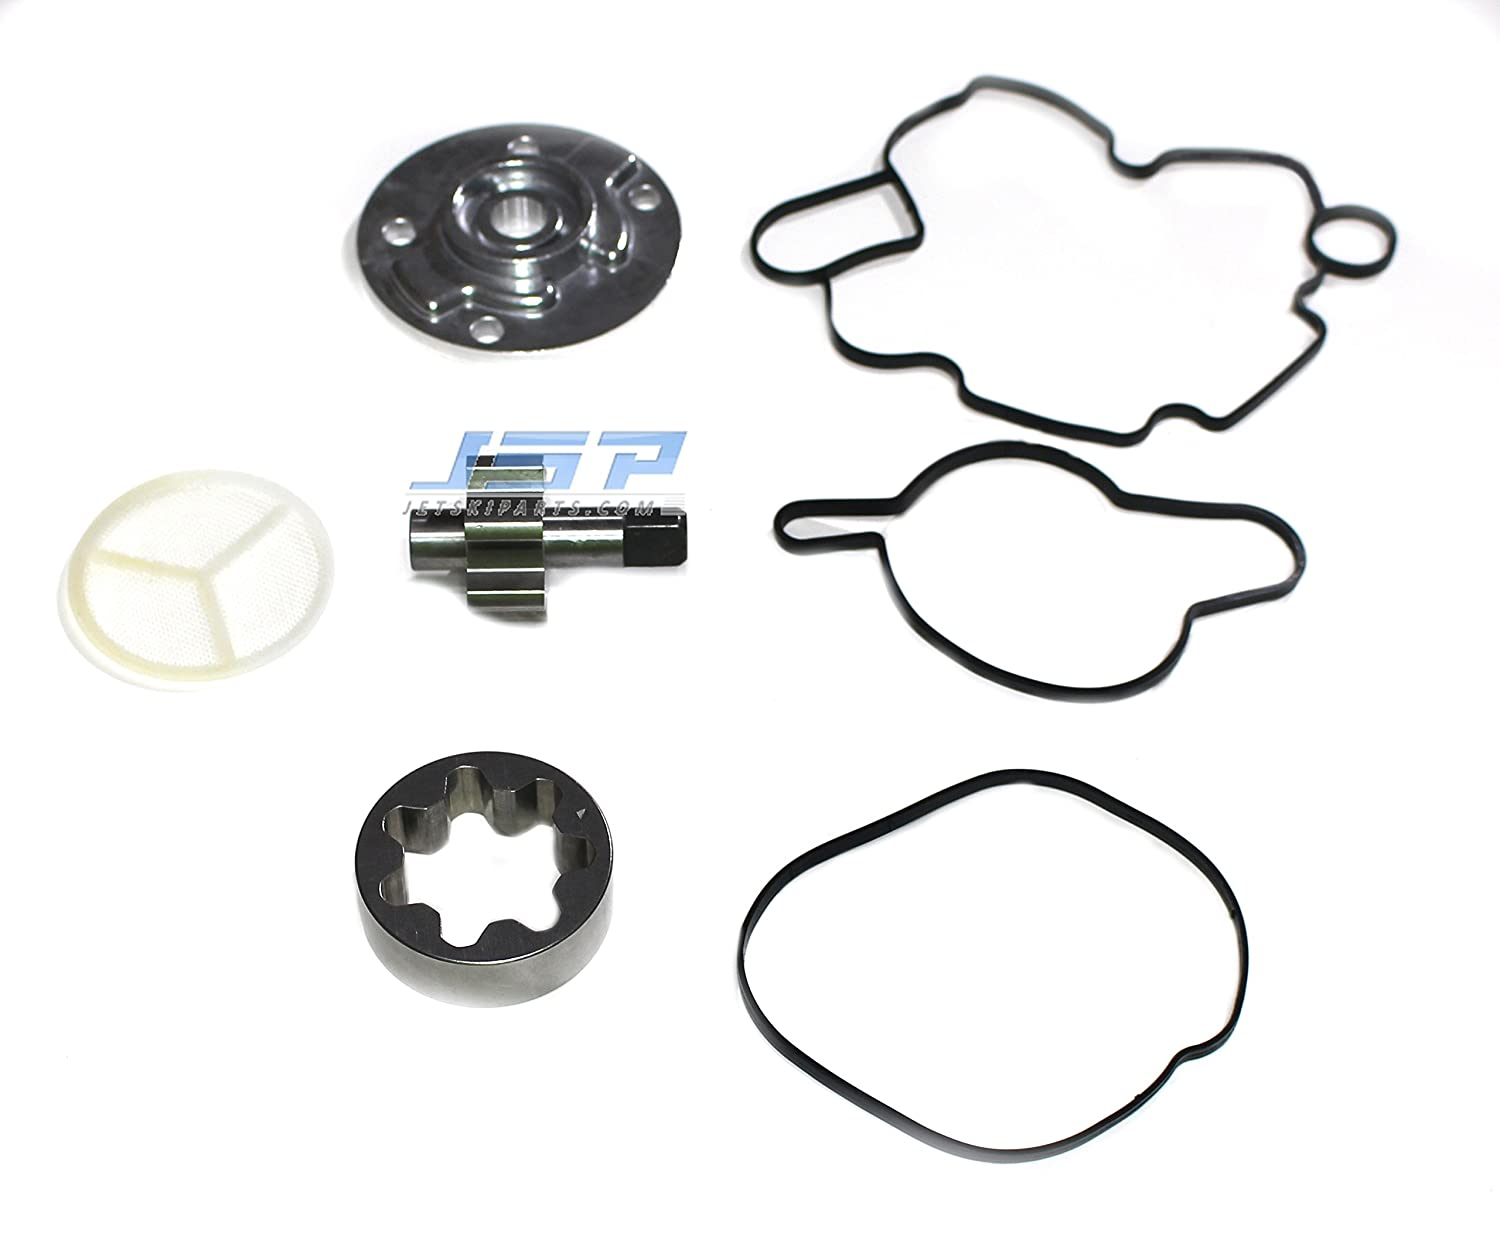 New Front Oil Pump Rebuild Kit Compatible with SeaDoo 4-Tec Secondary 05 RXT GTX SCIC 04-05 RXP